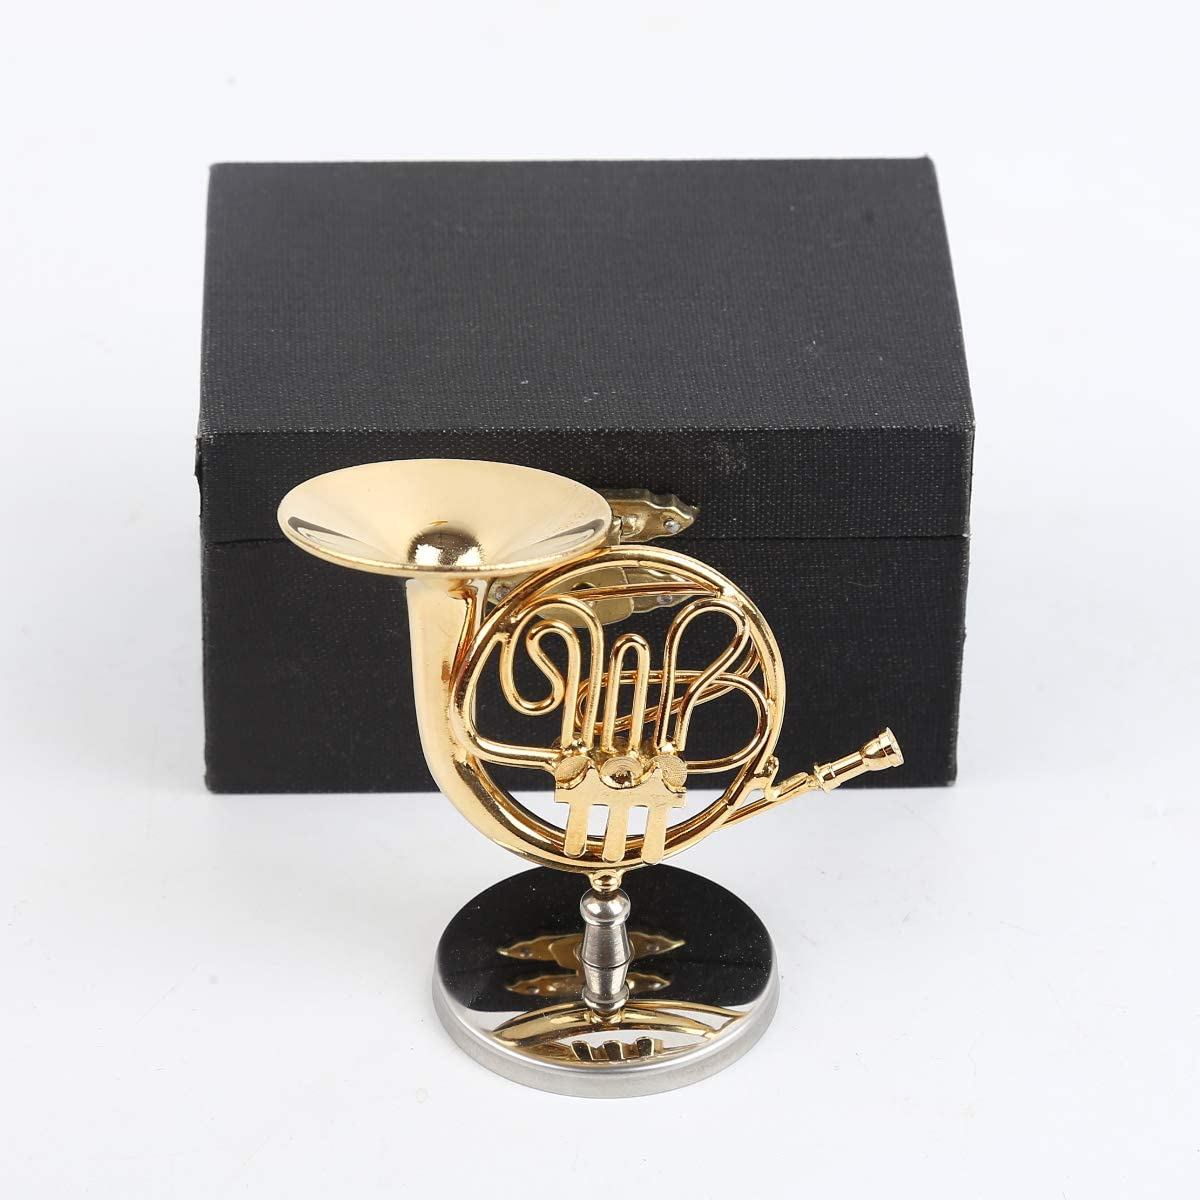 Dselvgvu Copper Miniature French Horn with Stand and Case Mini Musical Instrument Miniature Replica Dollhouse Model Mini French Horn Home Decoration (2.76